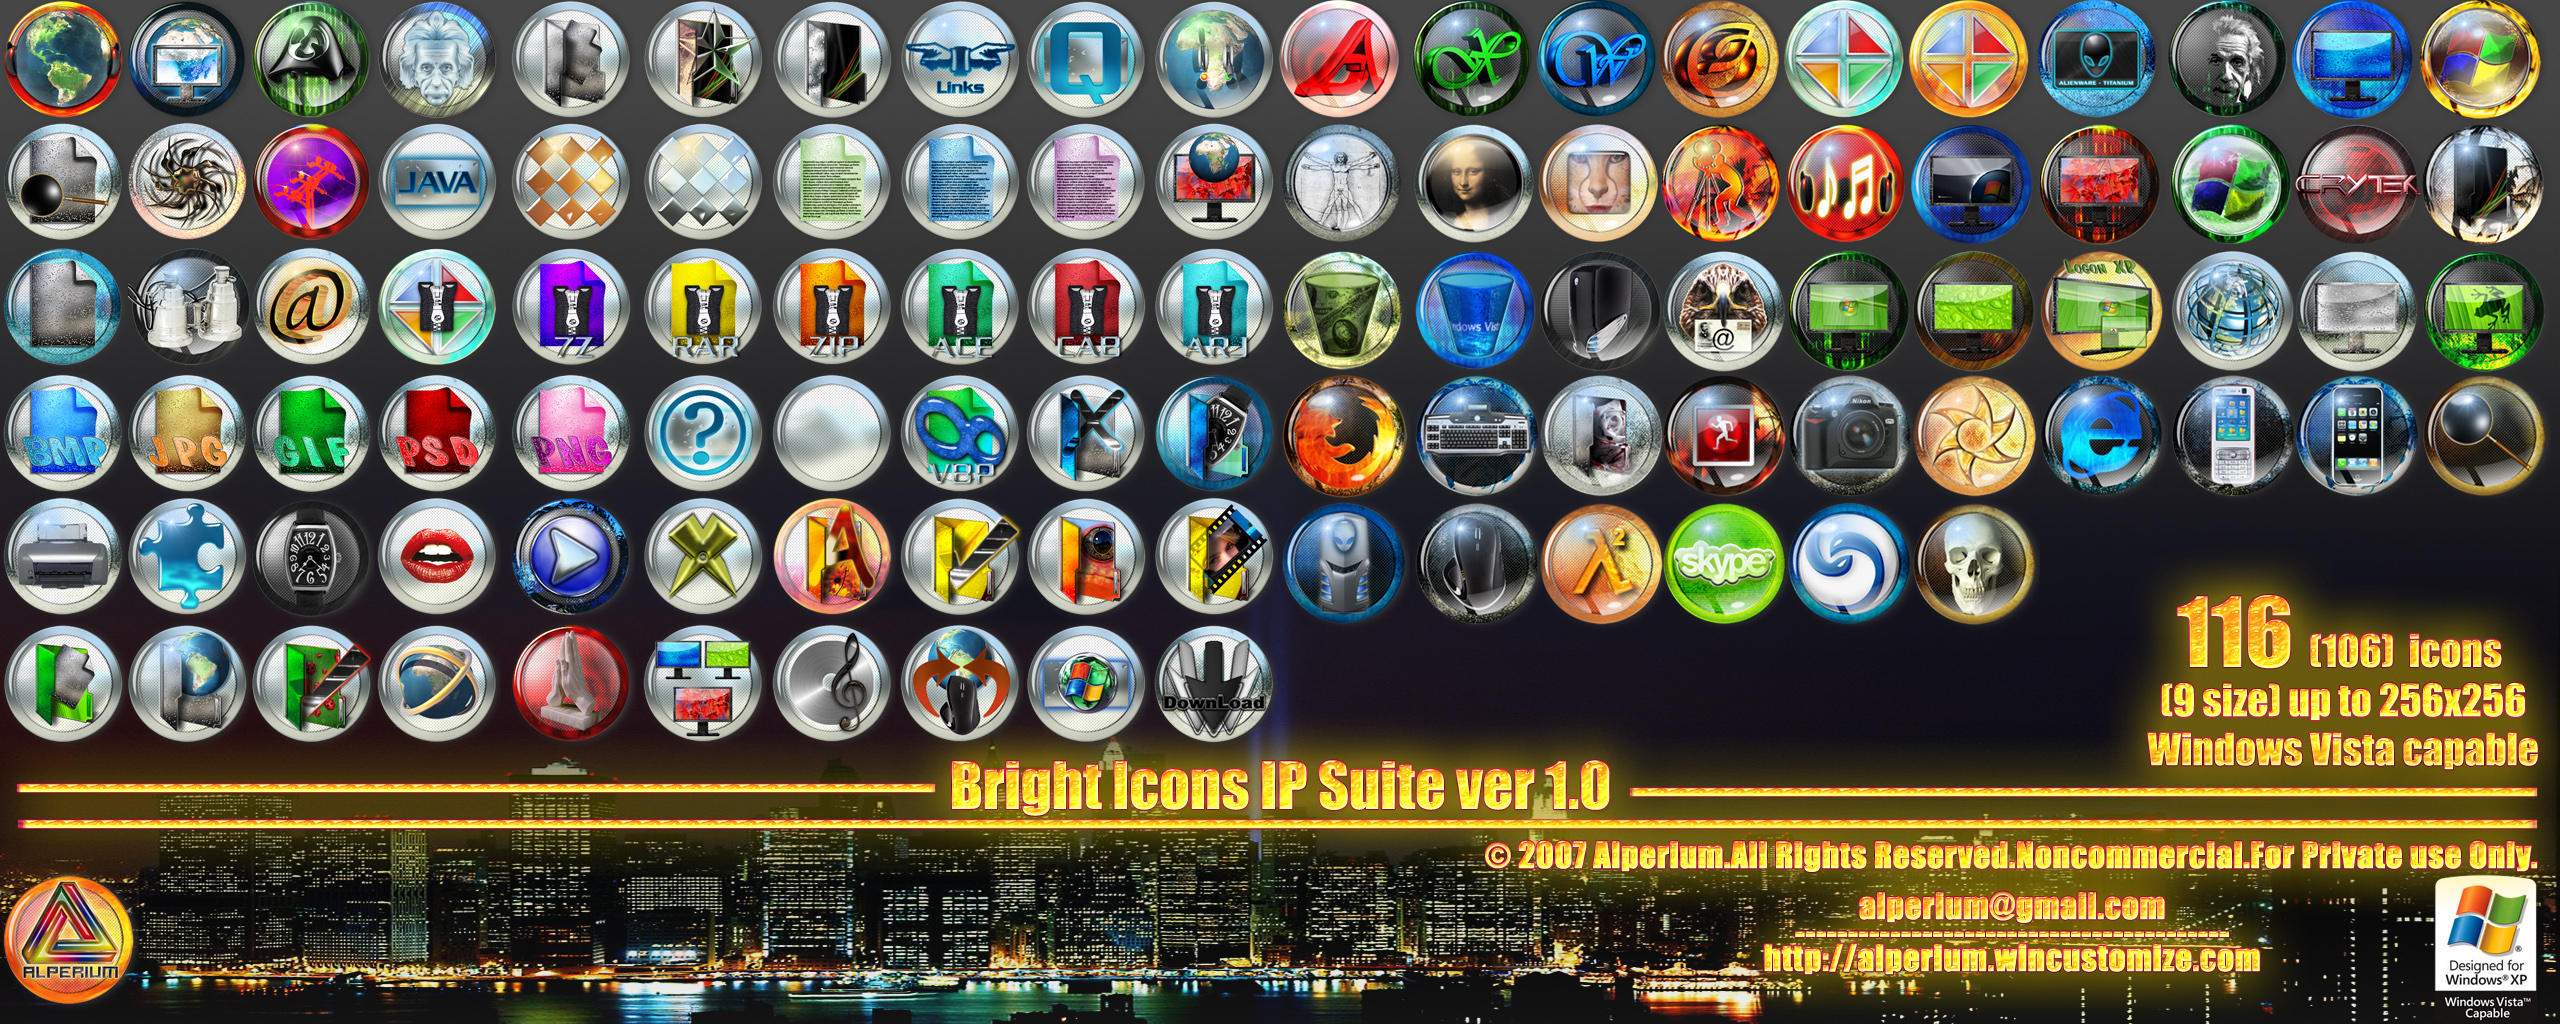 Bright Icons IP Suite v1.0 by klen70